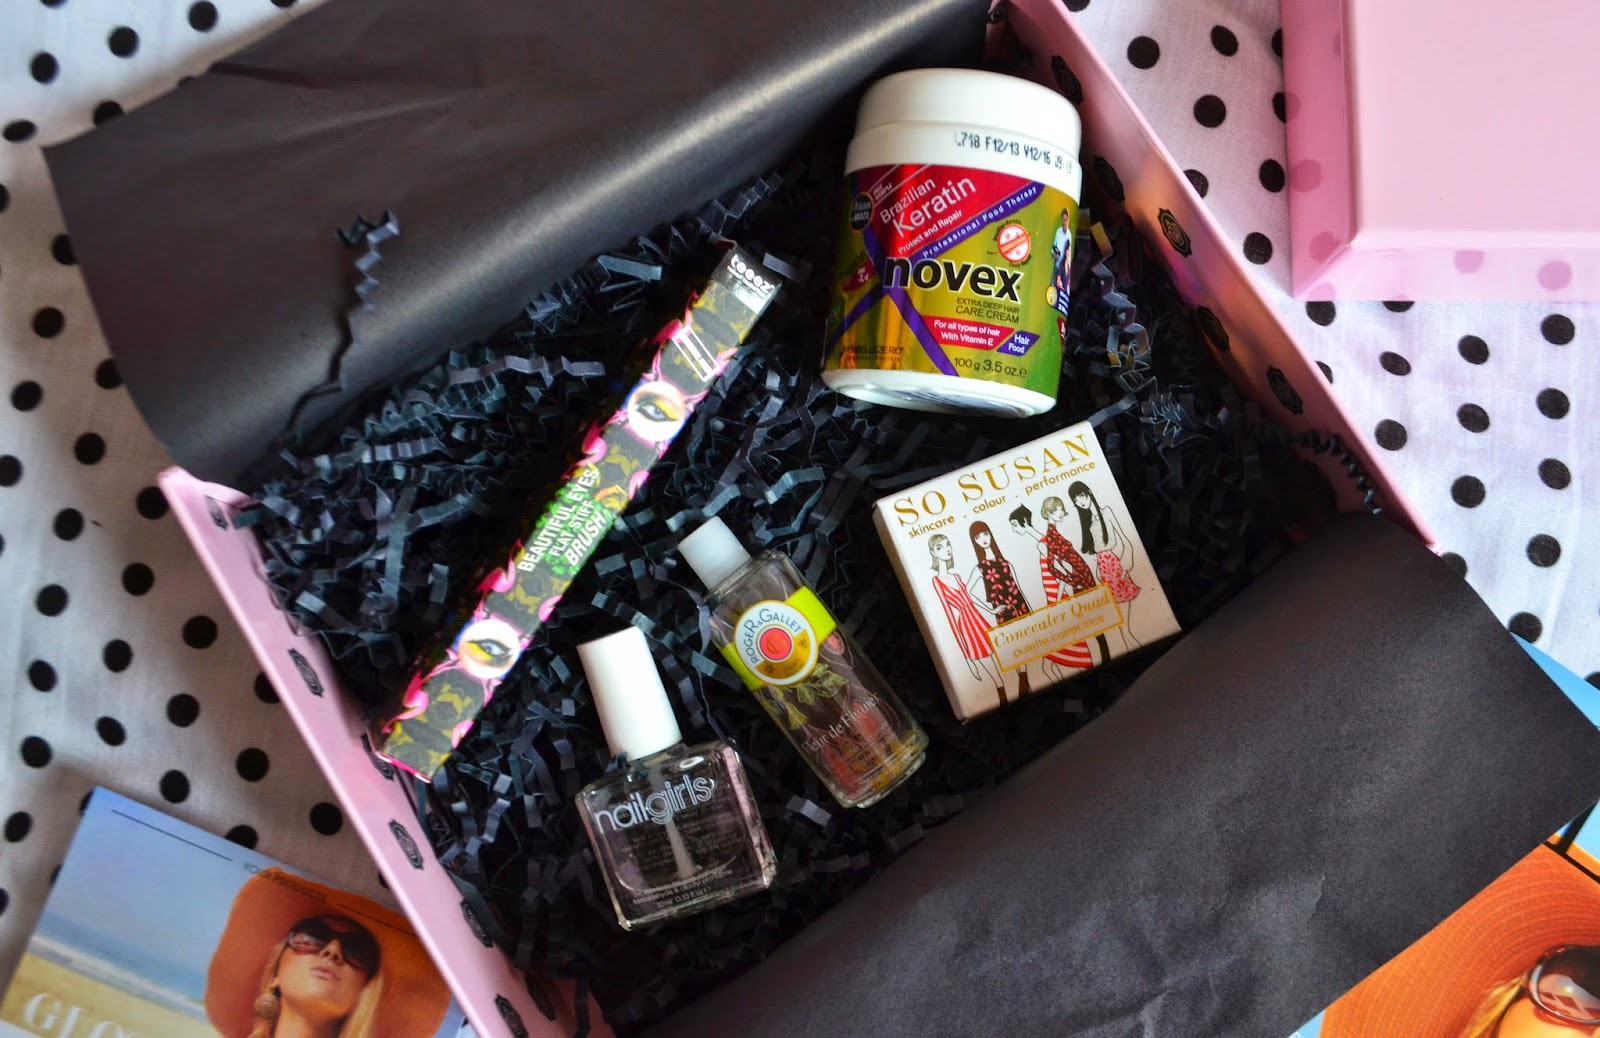 Inside the June Glossybox showing the beauty products